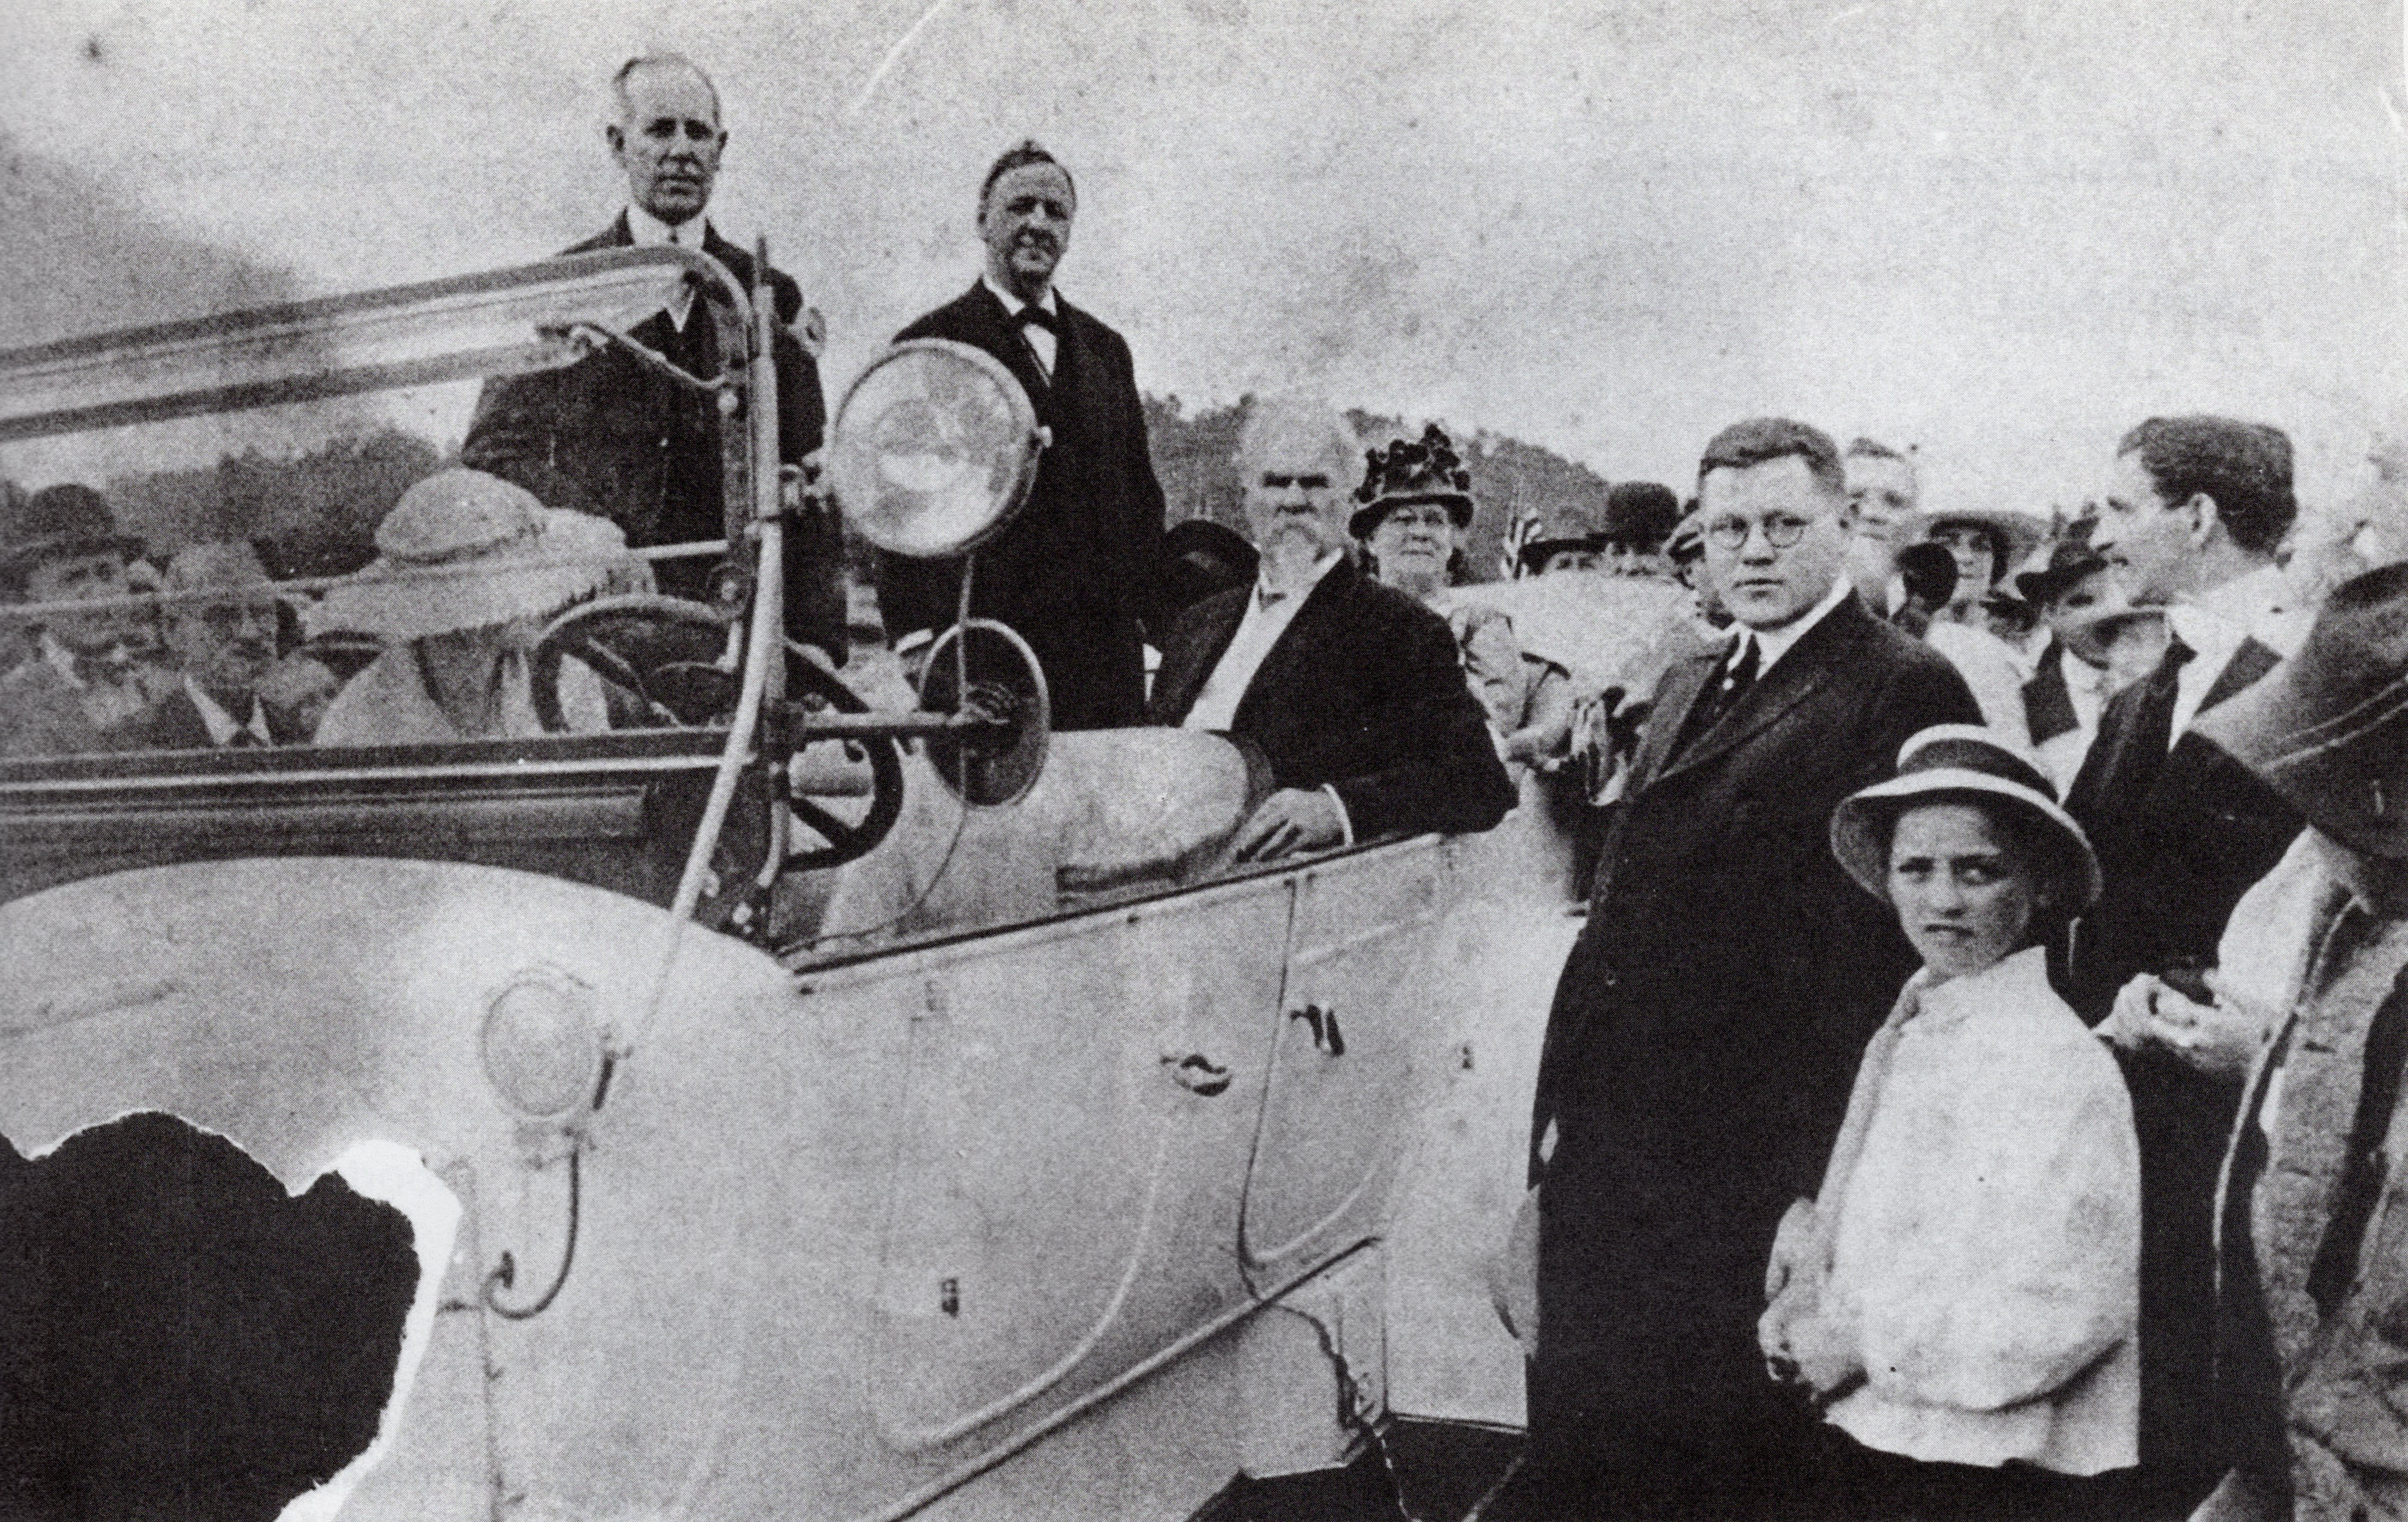 Dignitaries at the groundbreaking, 1917. Left to right: West Virginia Governor John Cornwell, Secretary of the Navy Josephus Daniels, former Governor William MacCorkle, and prominent Charleston businessman R.E.L. Ruffner, who also owned the car.